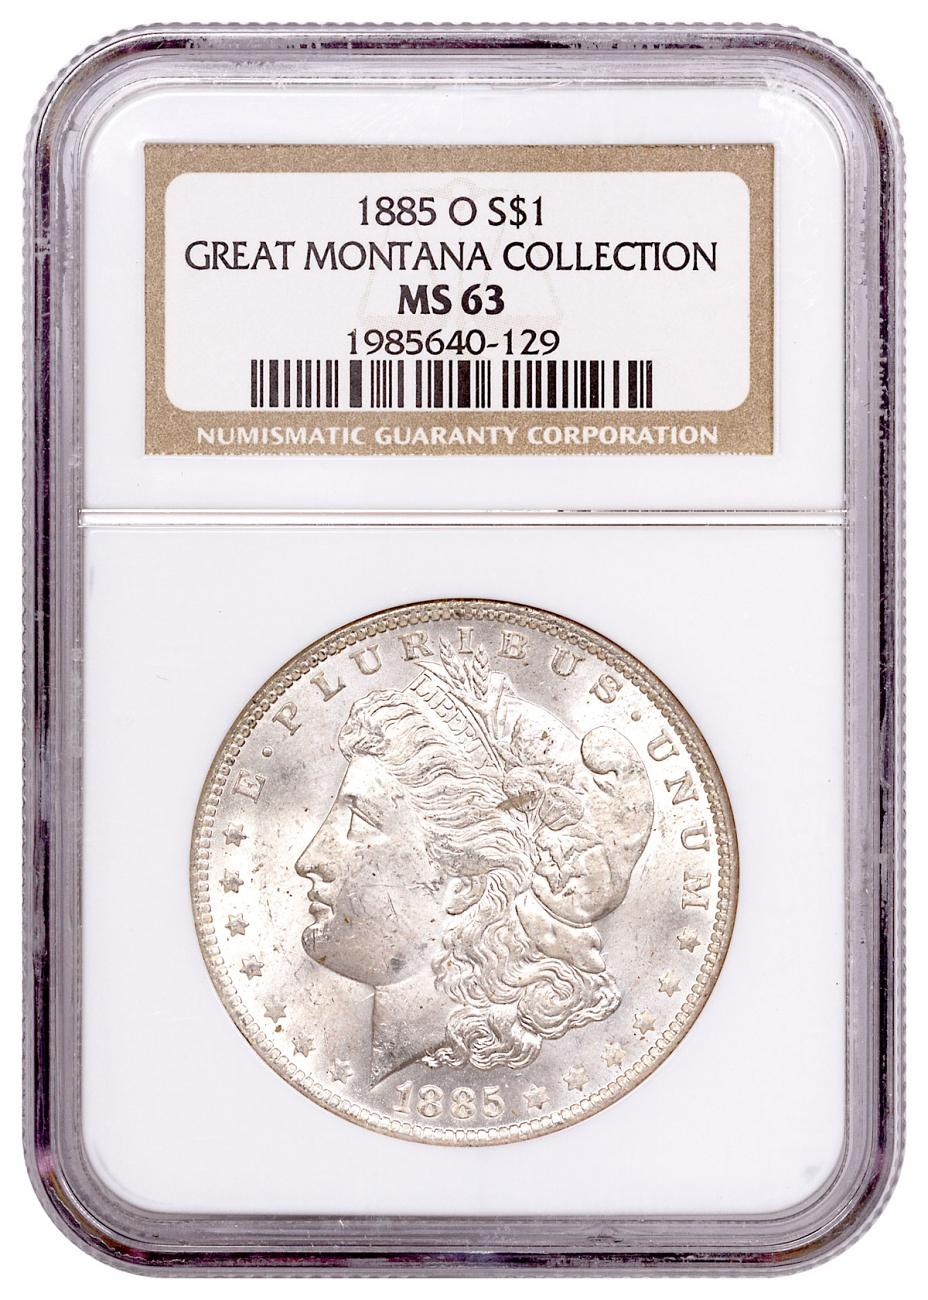 1885-O Morgan Silver Dollar From the Great Montana Collection NGC MS63 Toned CPCR 0129